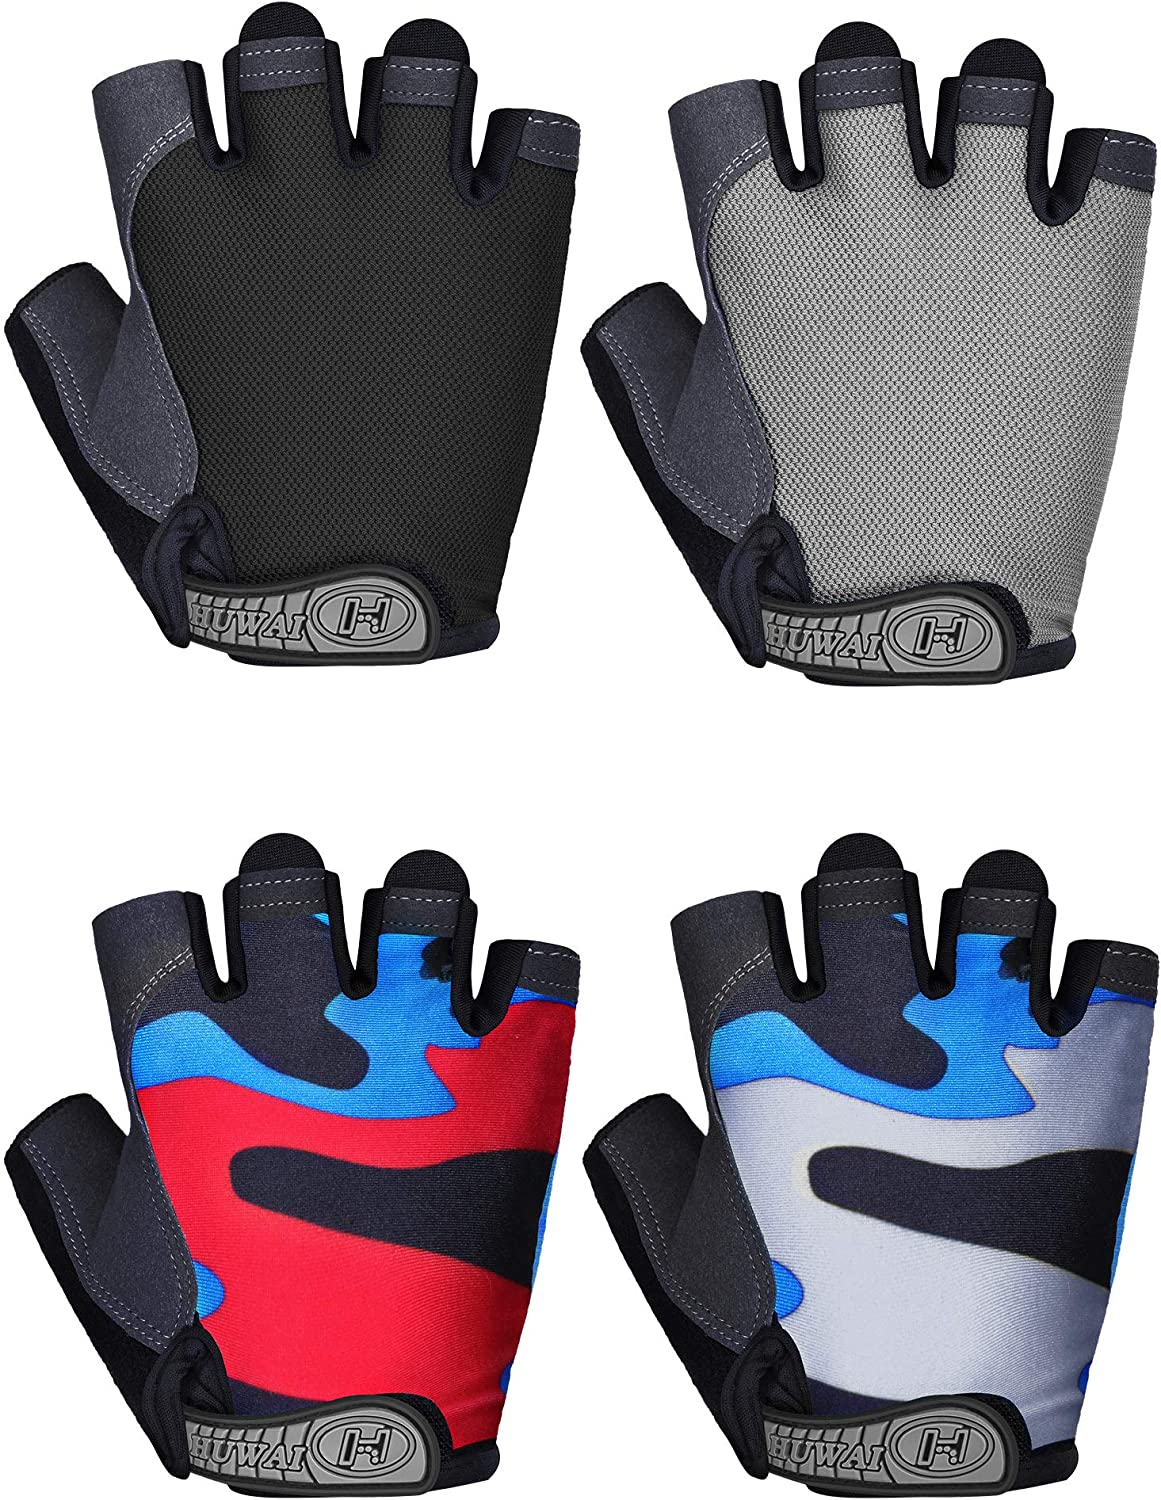 Men Outdoor Sports Gloves For Racing Bicycle Motorcycle Mountain Bike Fingerless